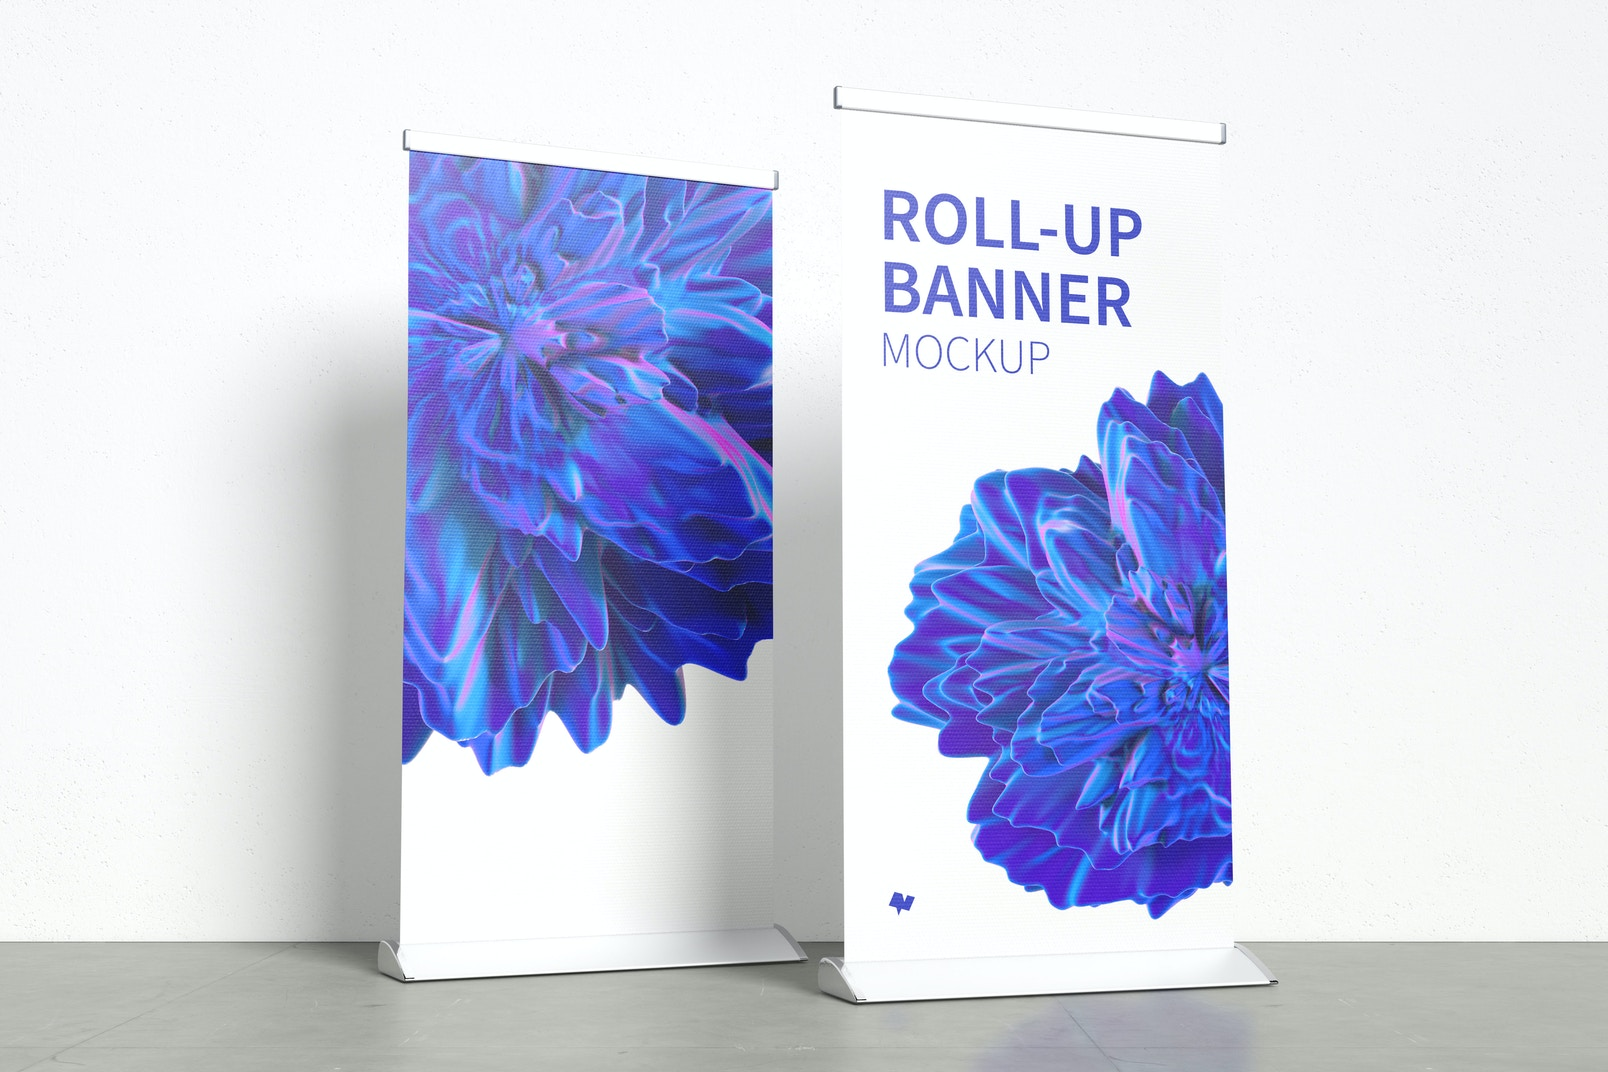 Standing Roll-Up Banners Mockup with a Background Wall